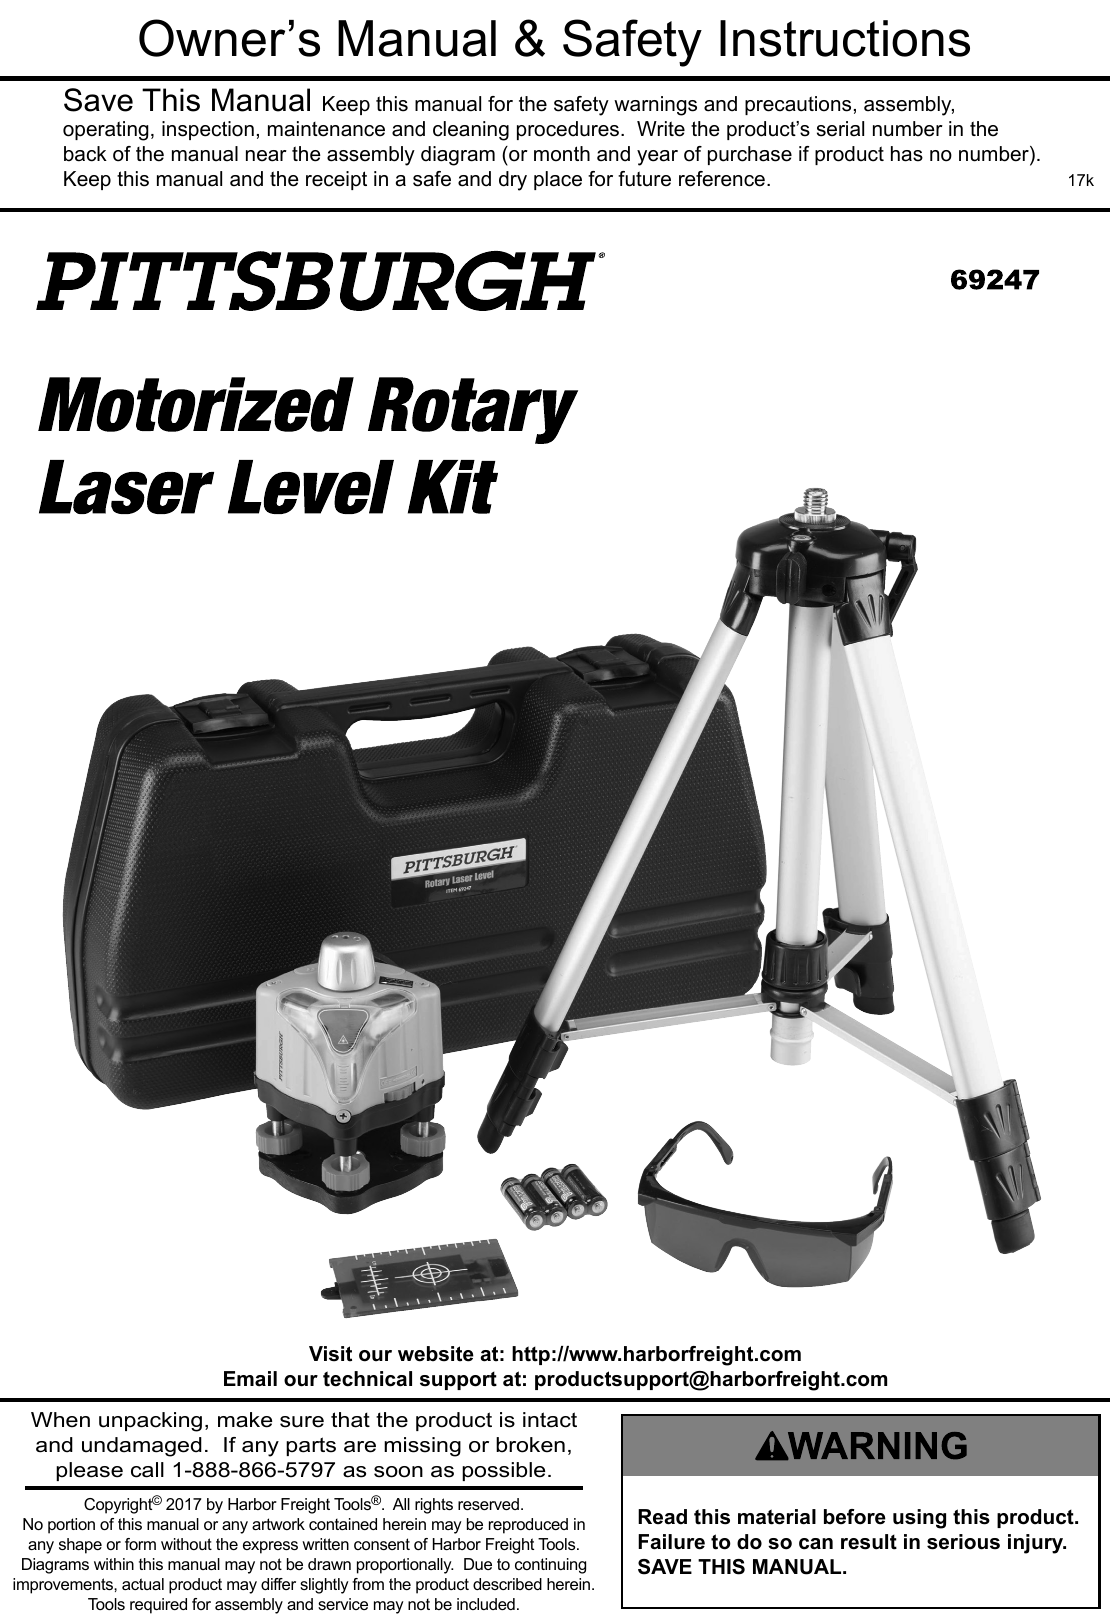 Manual For The 69247 Motorized Rotary Laser Level Kit